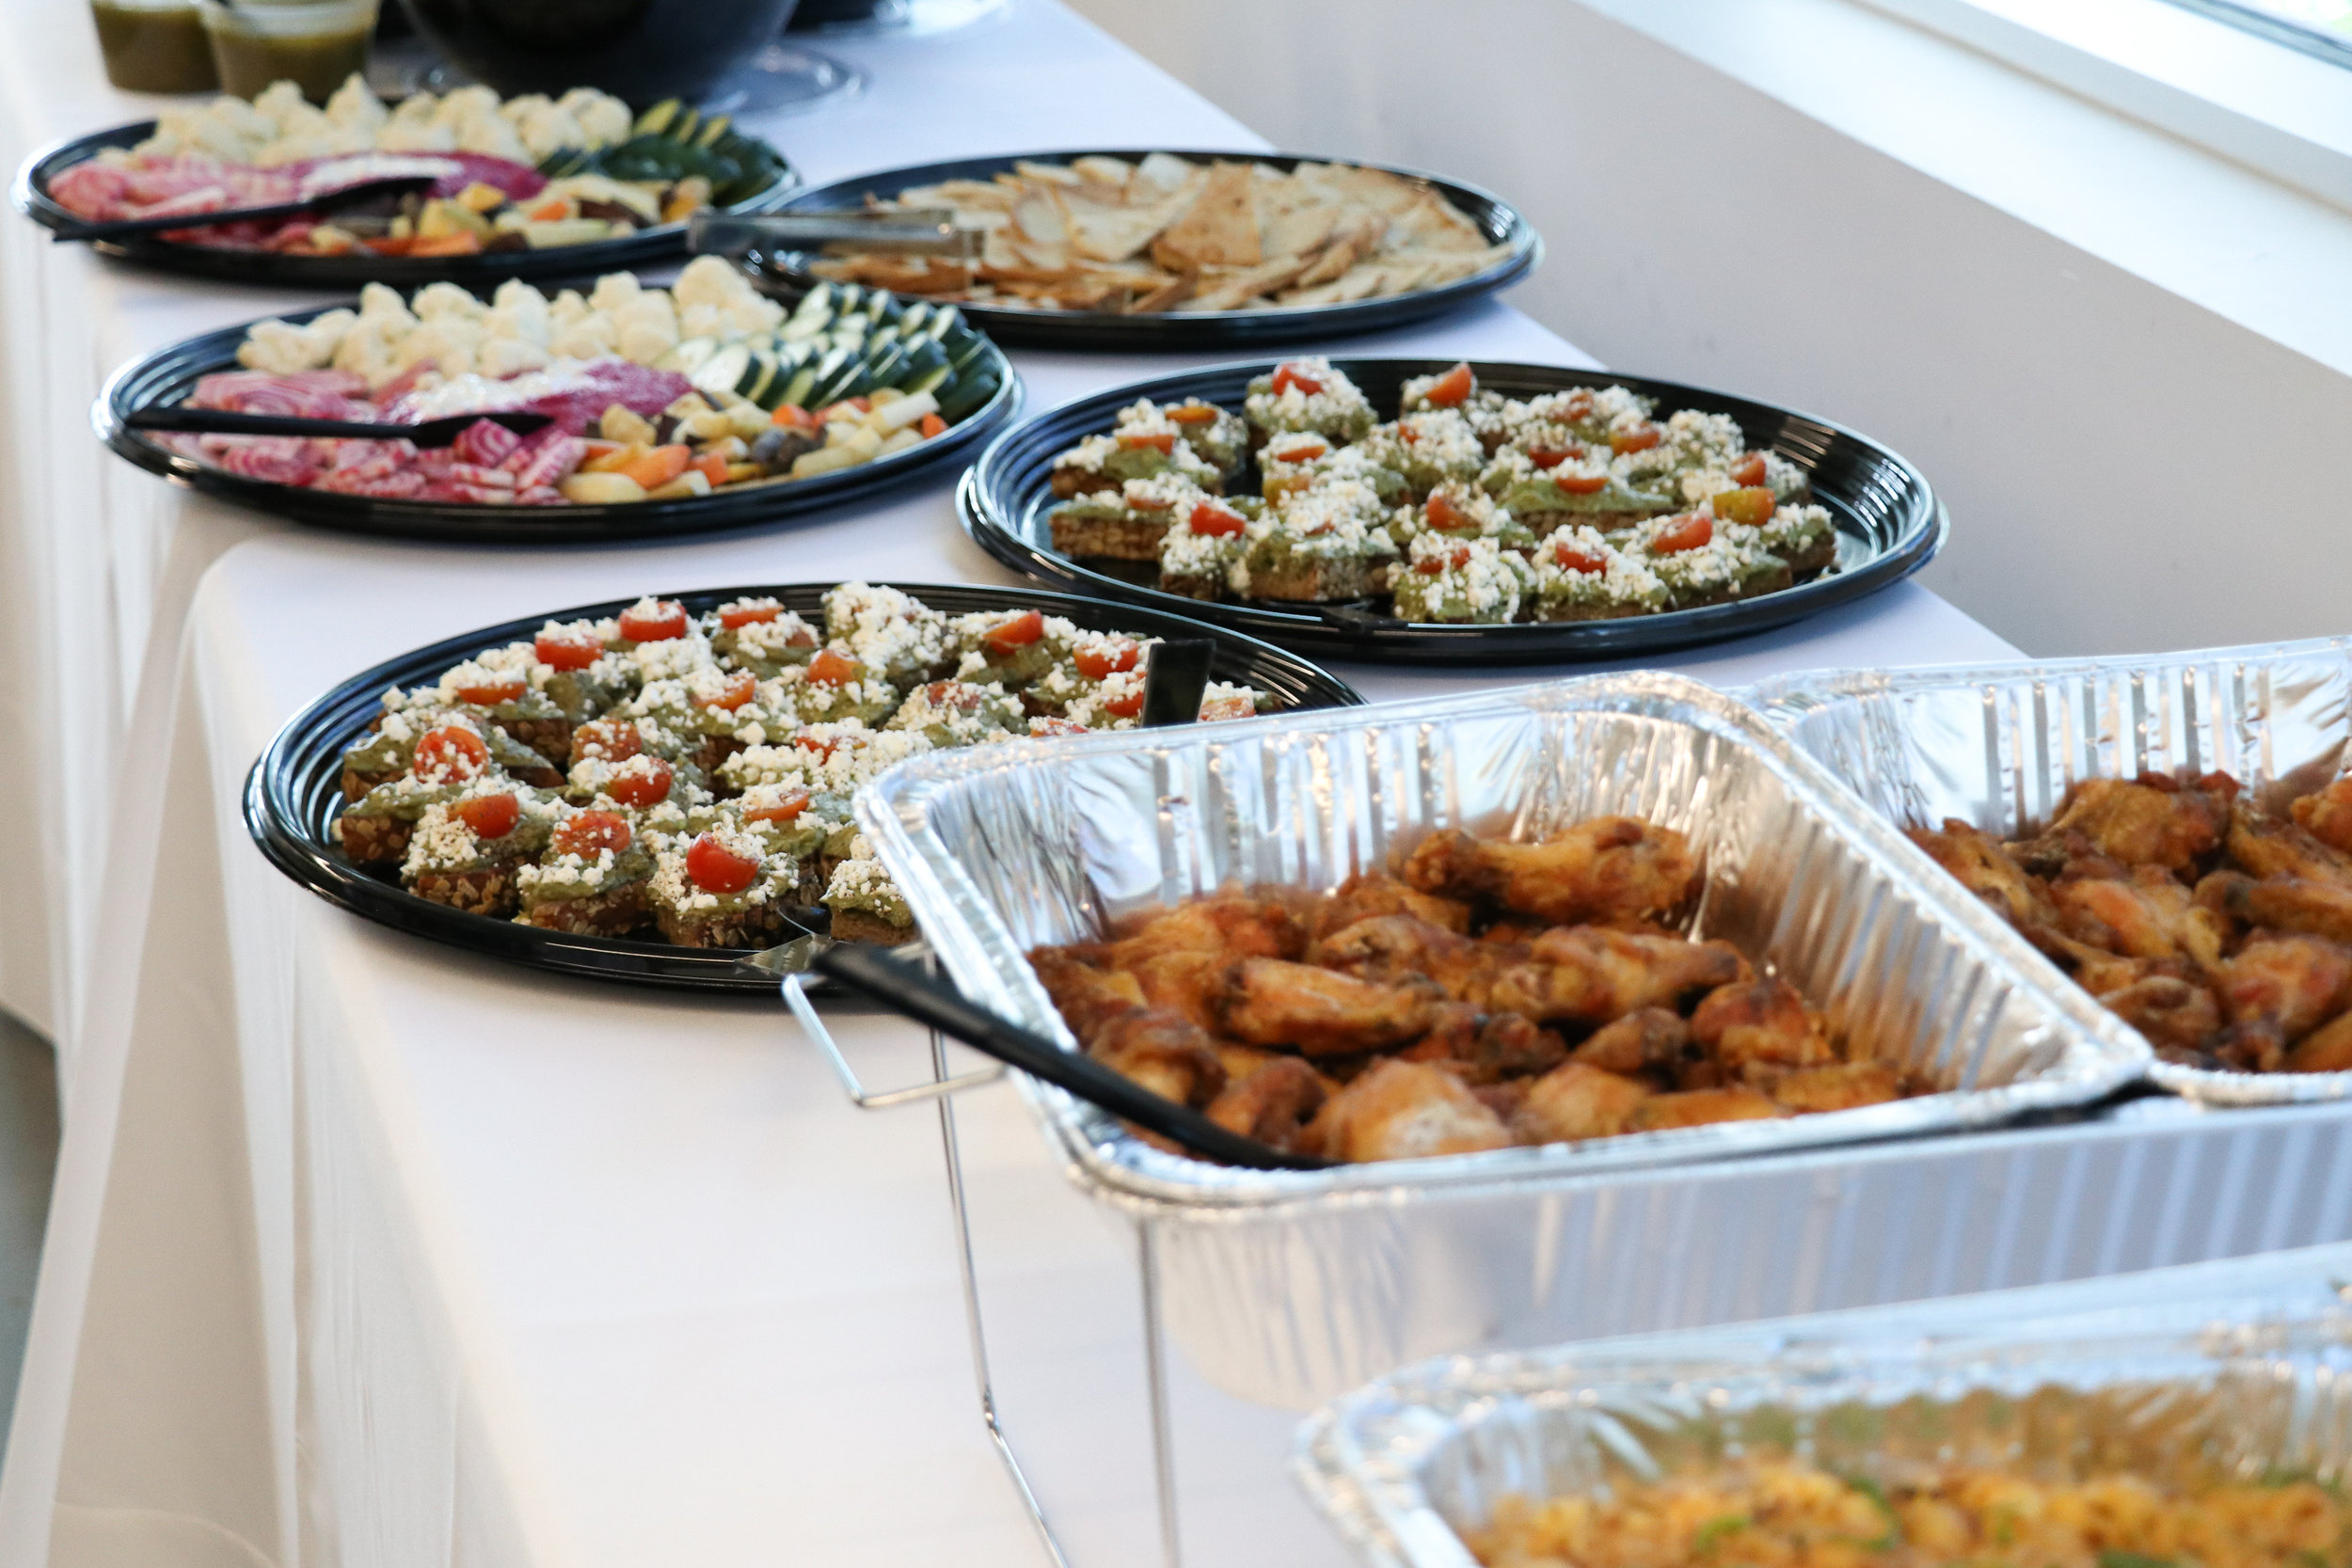 A delicious spread of food provided by Irene's Catering